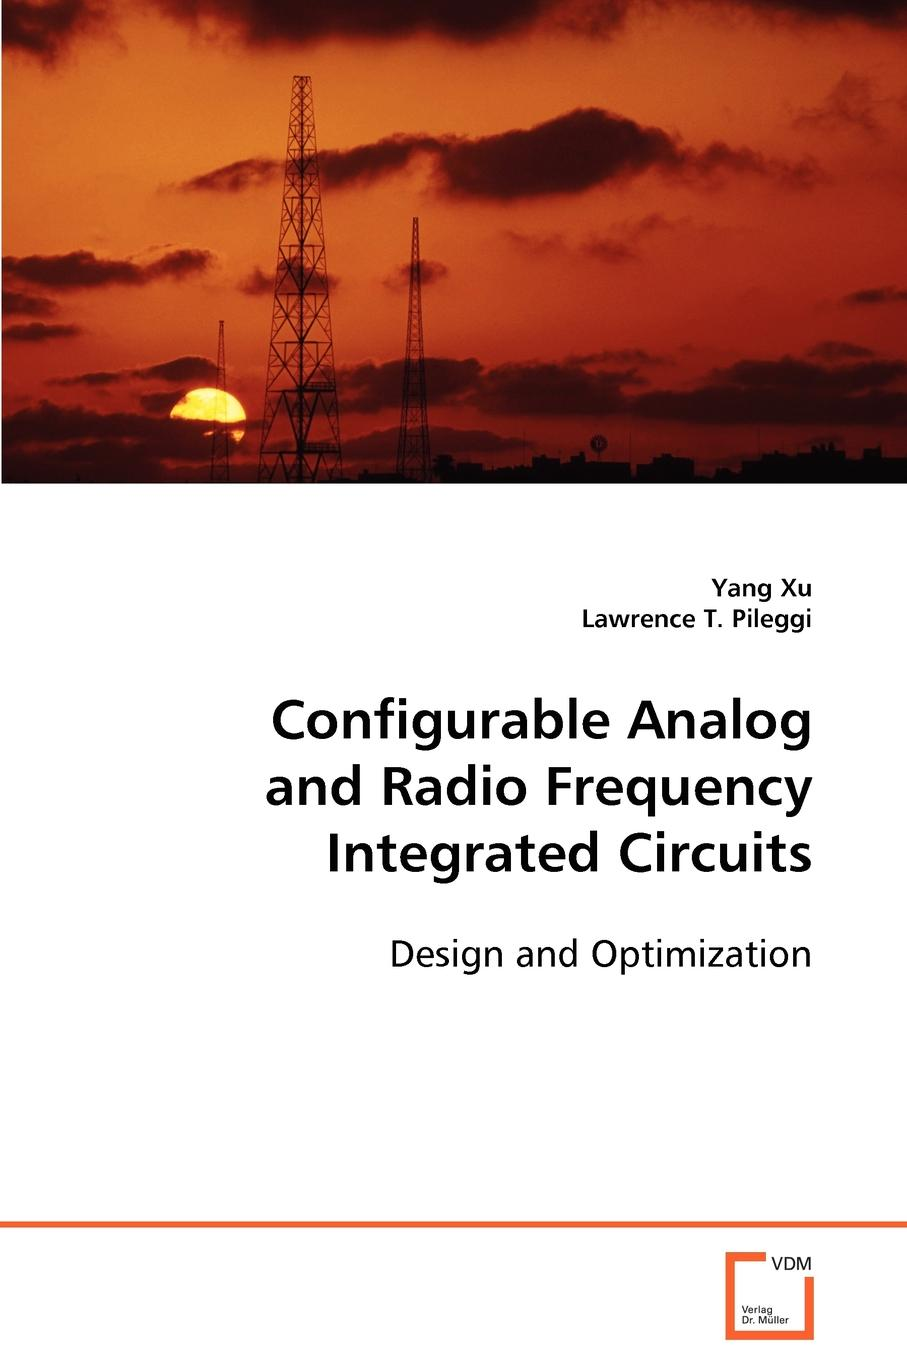 Yang Xu, Lawrence T. Pileggi Configurable Analog and Radio Frequency Integrated Circuits